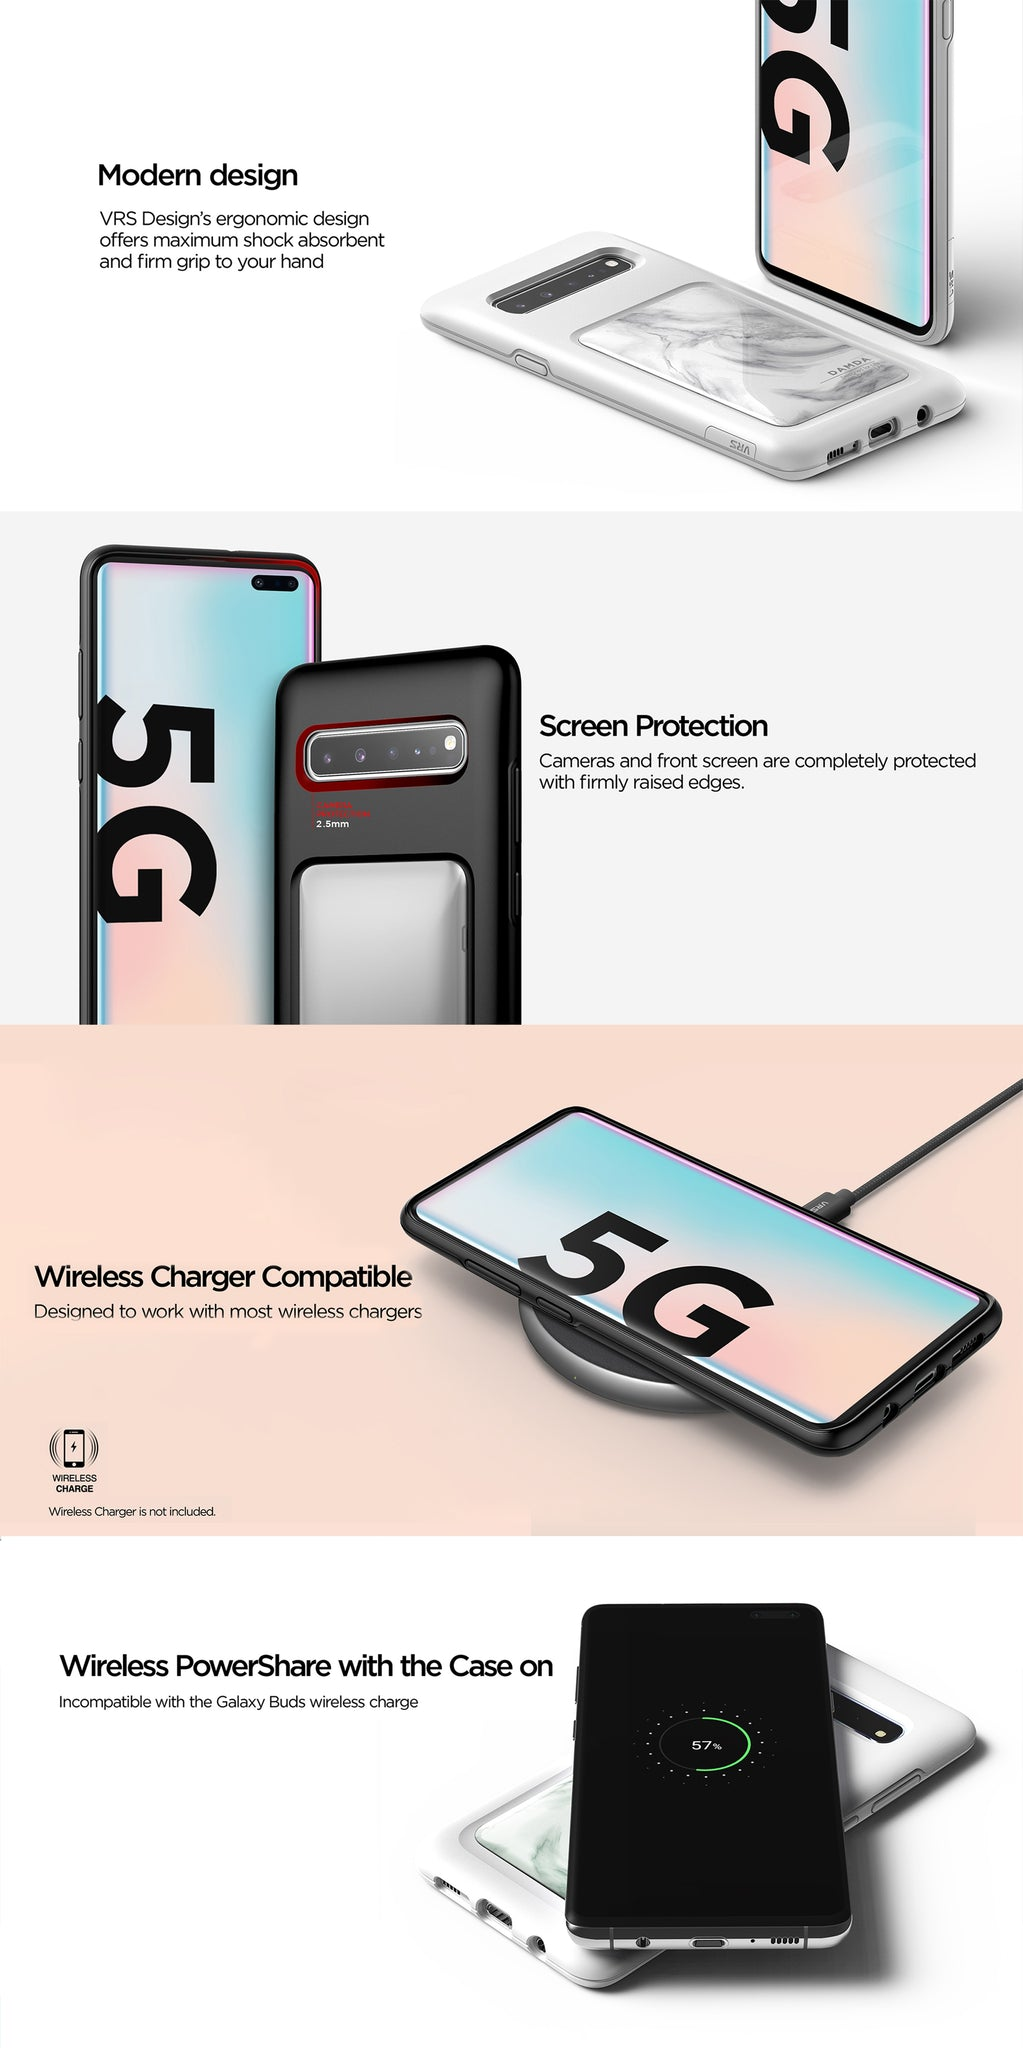 VRS Design | The Best Protection Case for Galaxy S10 5G - Damda High Pro Shield